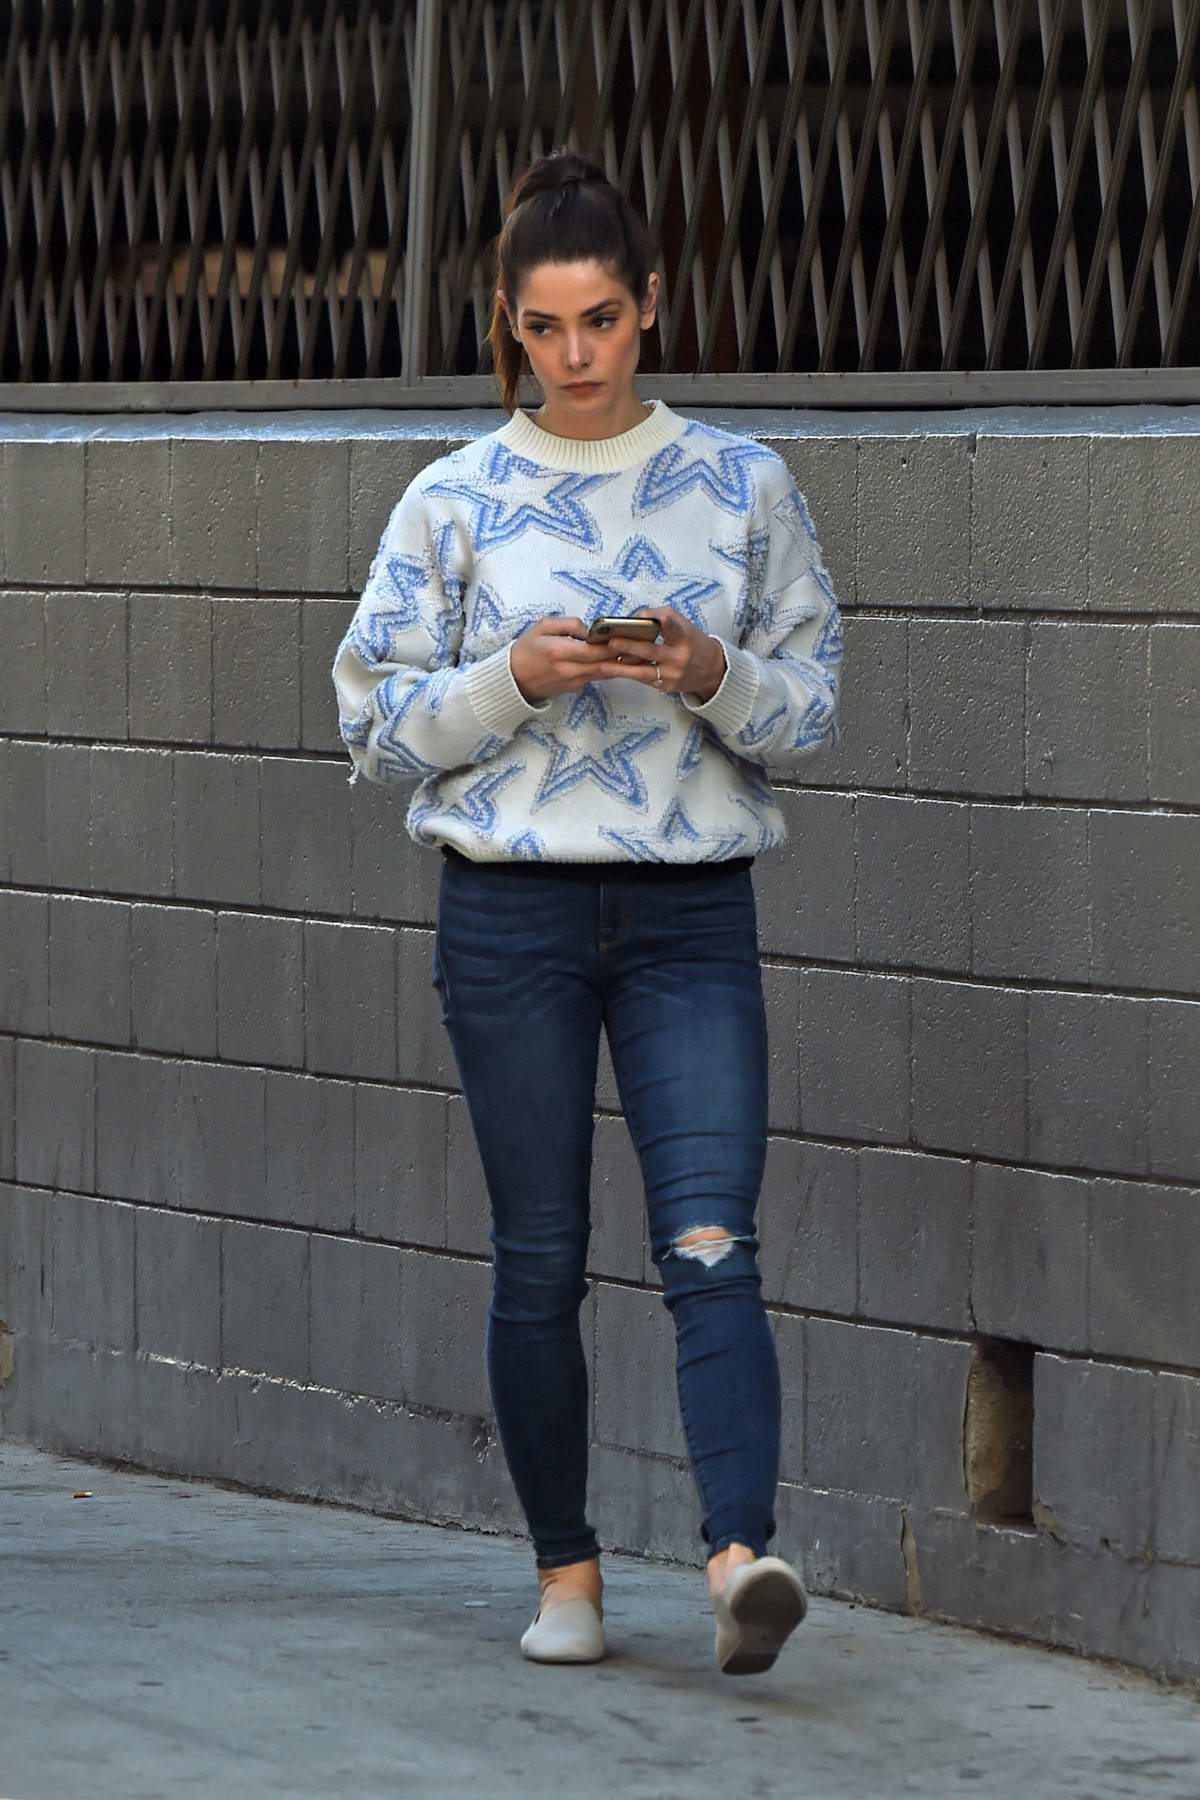 Ashley Greene seems busy on her phone while running errands in Los Angeles